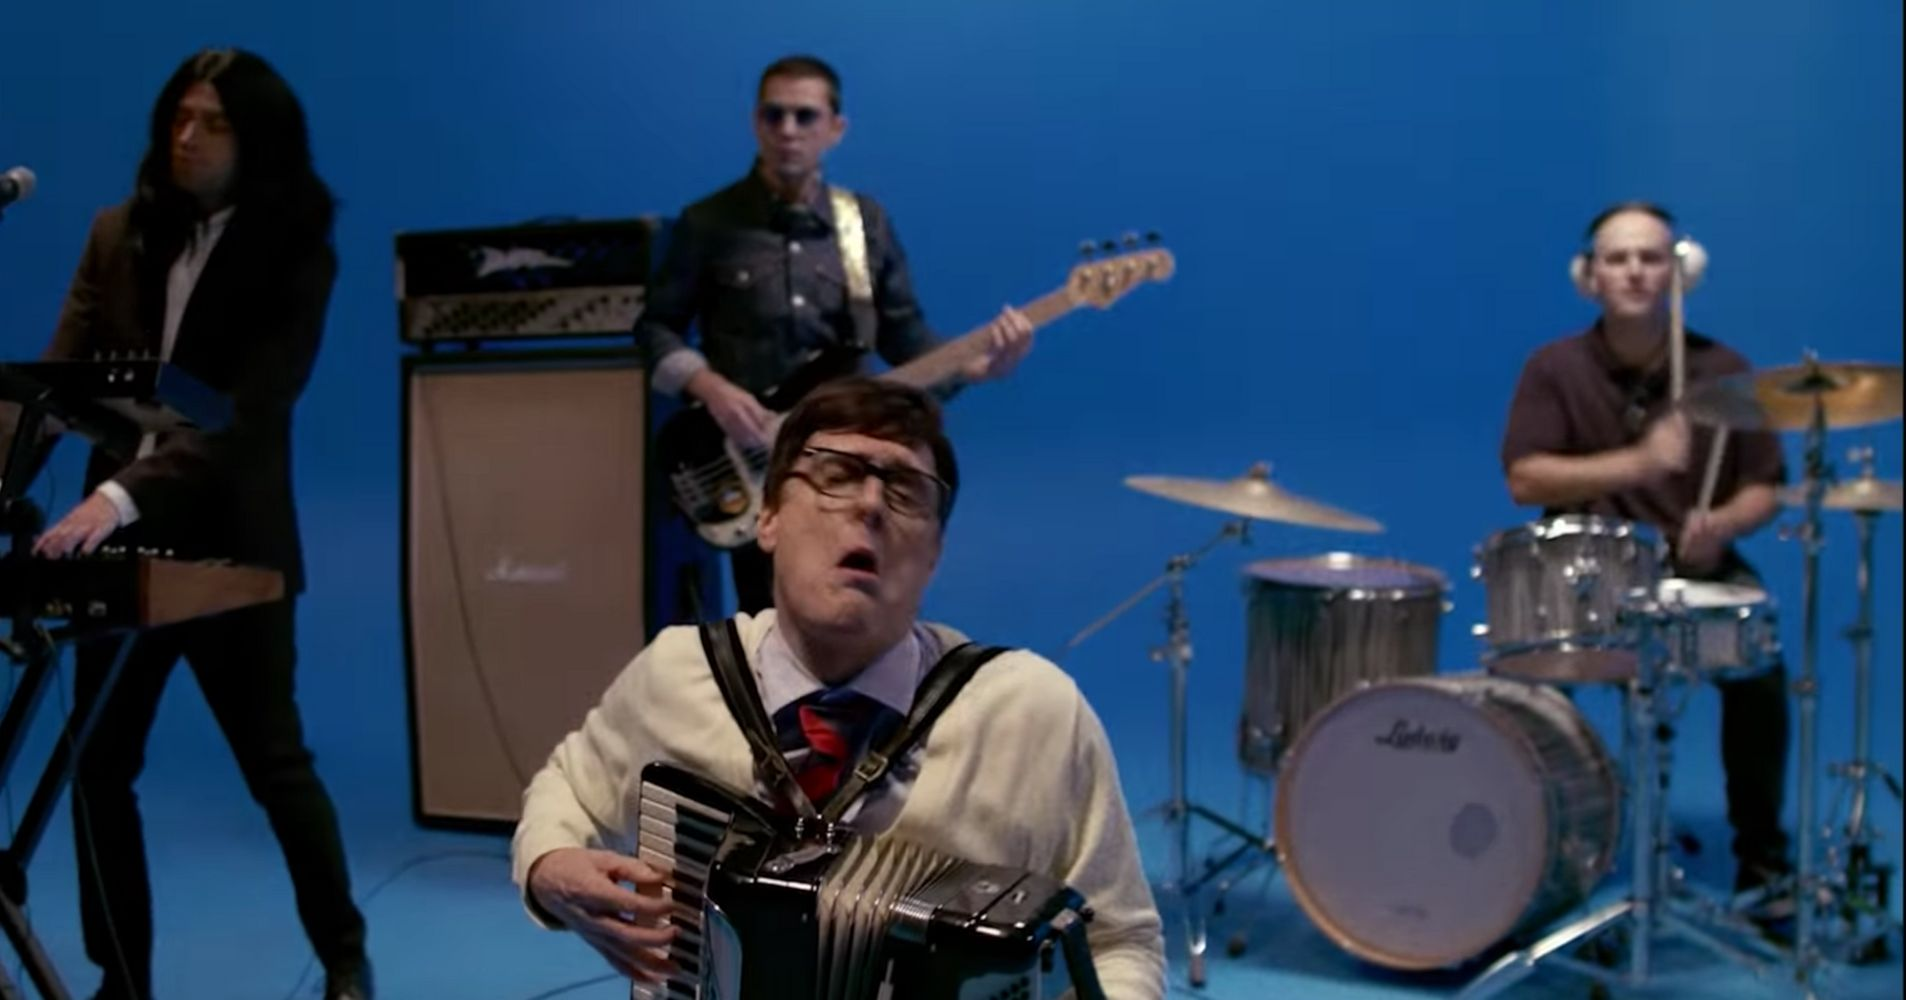 Weezer's 'Africa' Video Has Weird Al As Rivers Cuomo In A 'Sweater Song' Parody | HuffPost